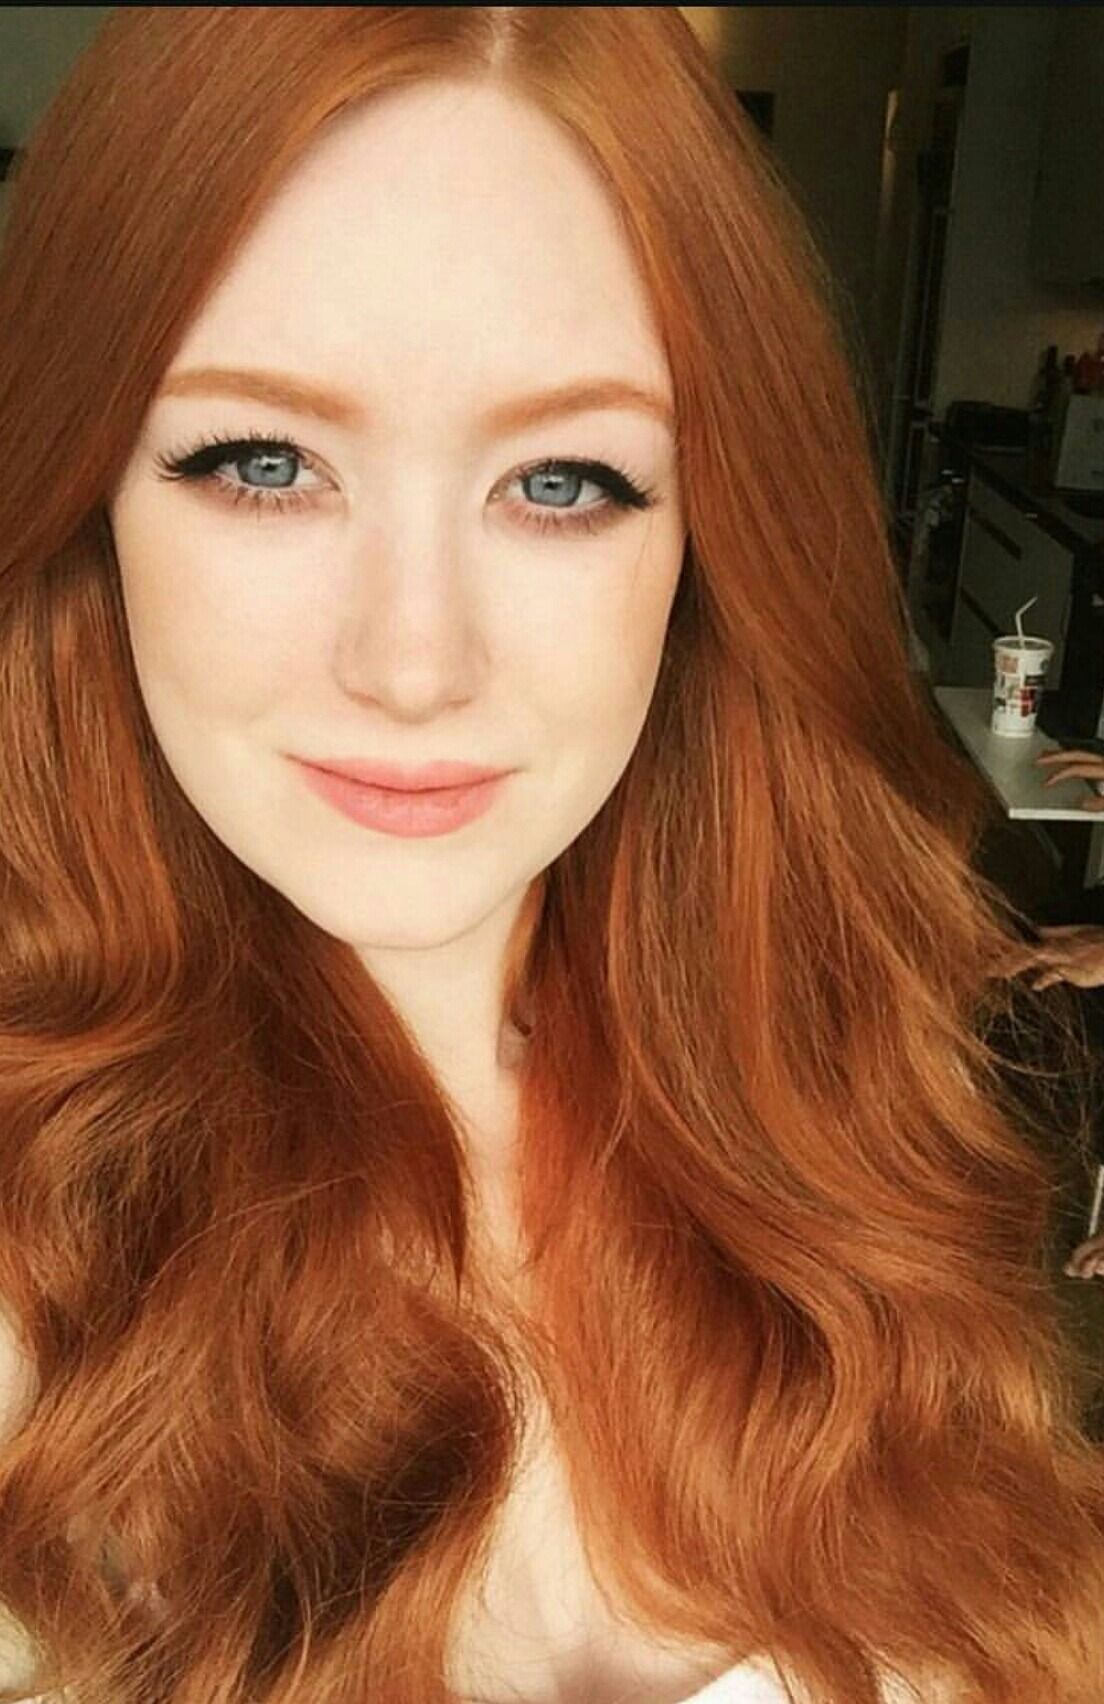 Smoke Out The Undereye Shadow To Match Your Hair Beautiful Red Hair Girls With Red Hair Redhead Makeup